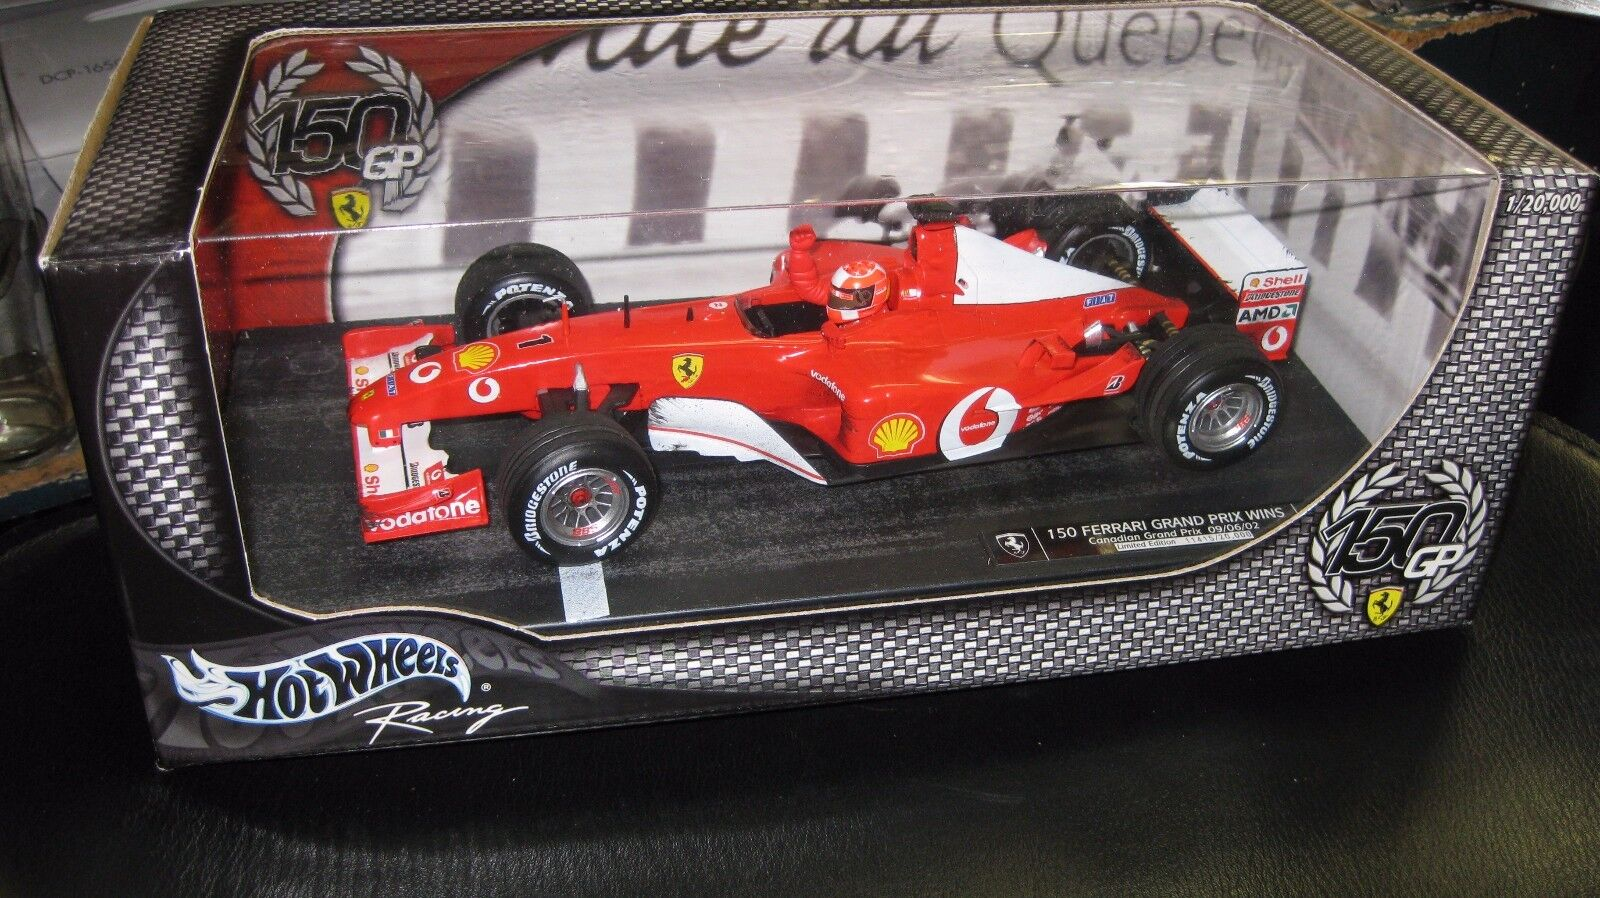 HOT WHEELS 1 18 F1 SCHUMACHER 150 FERRARI GRAND PRIX WINS CANADIAN GRAND PRIX 02